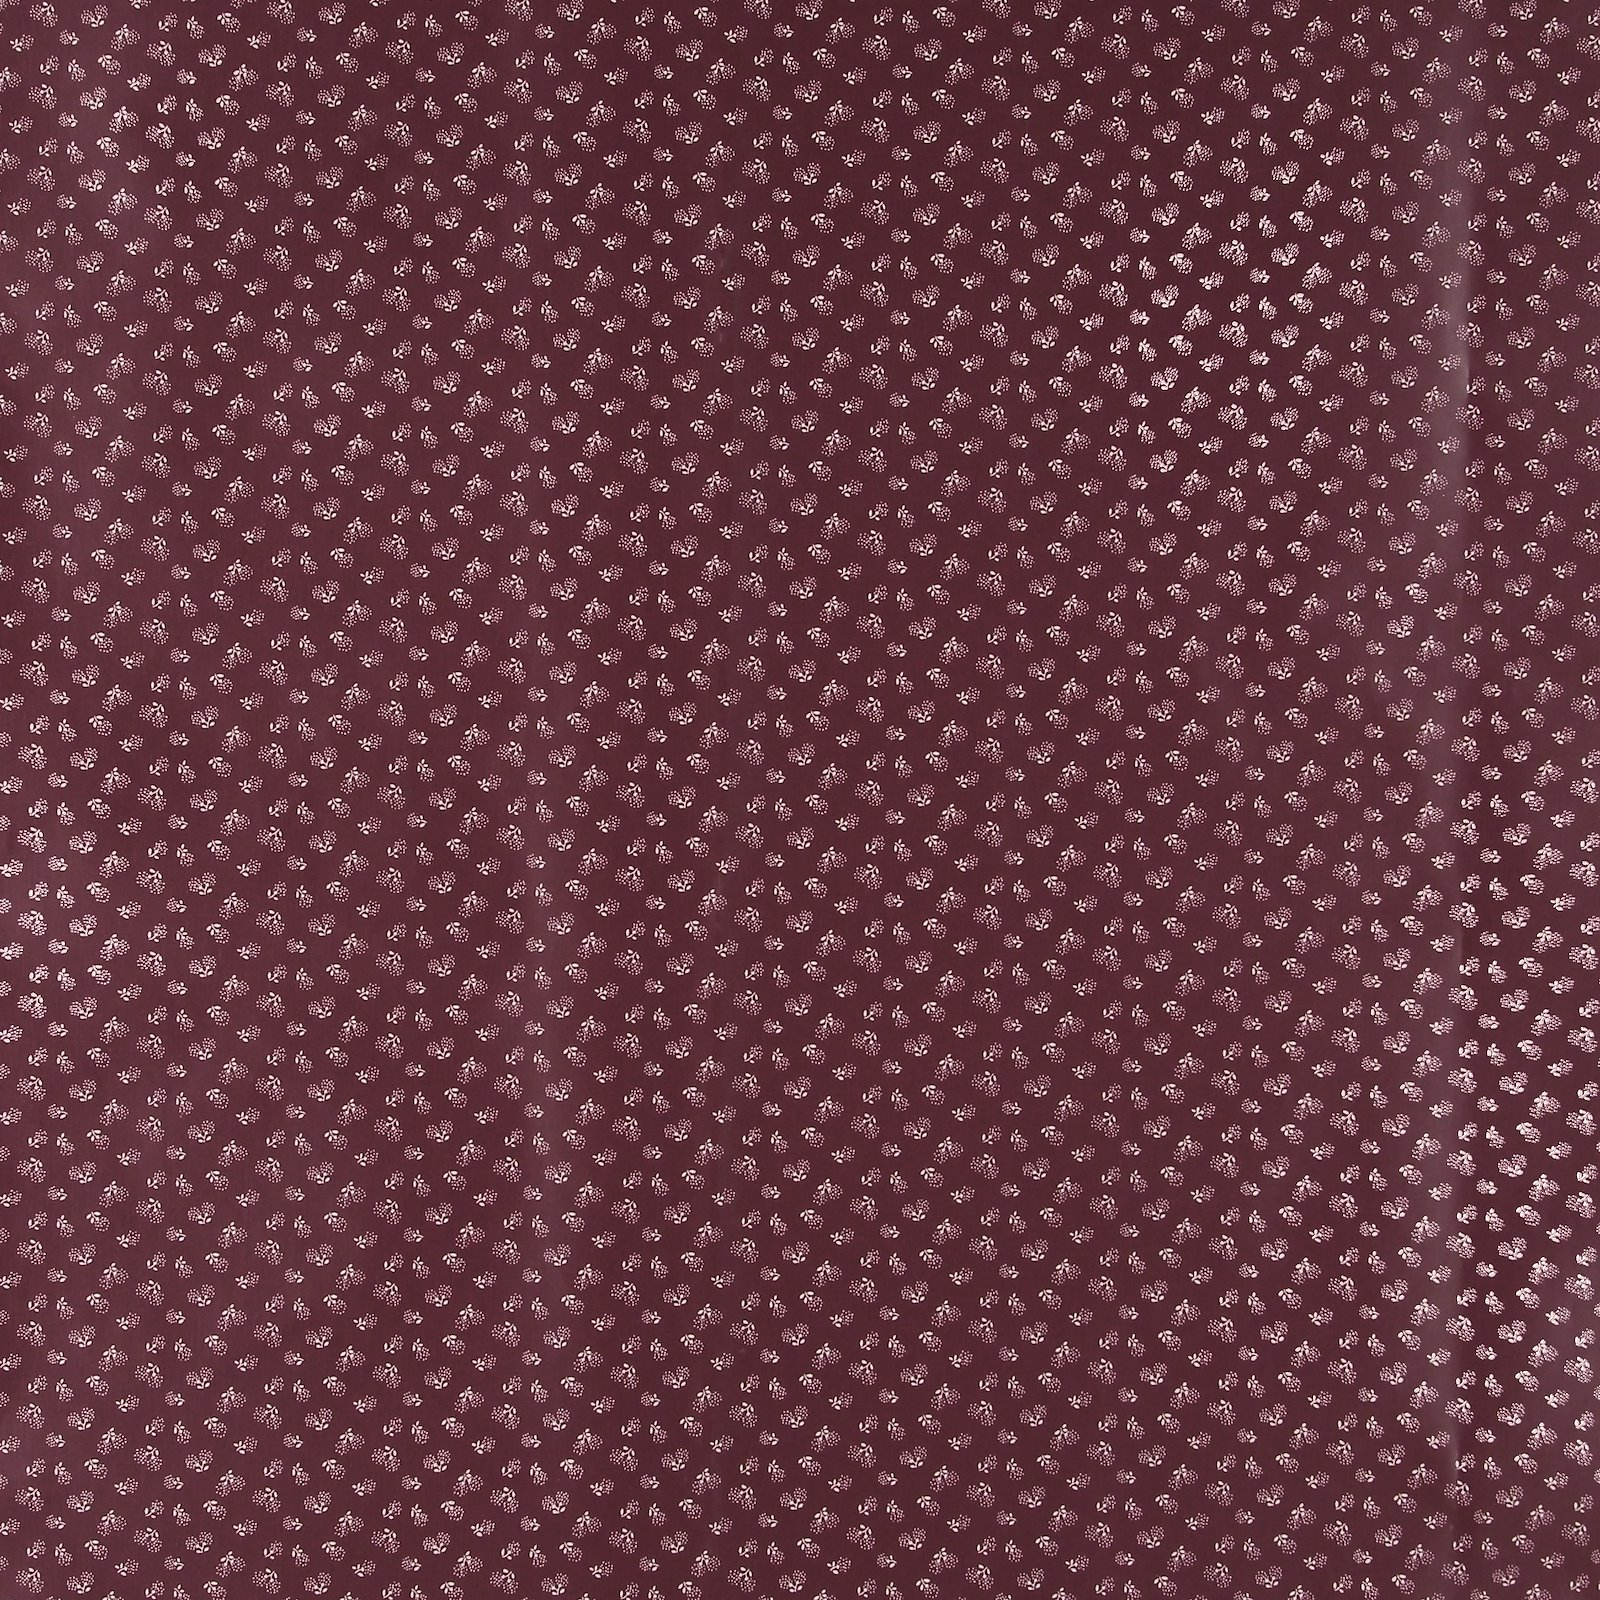 Woven oil cloth bordeaux with flowers 863692_pack_sp